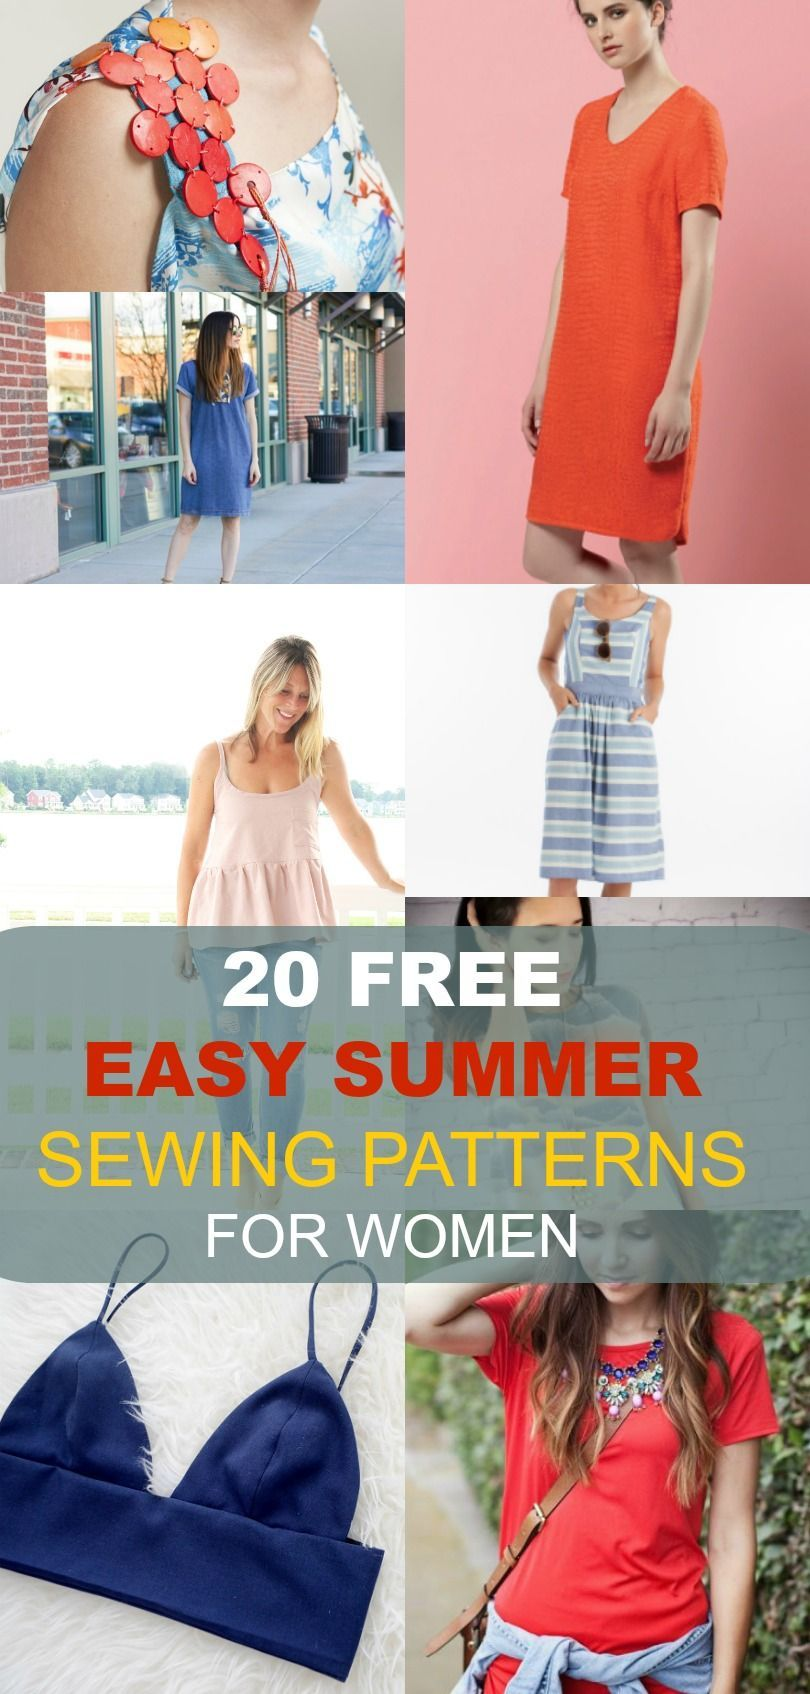 Free sewing patterns 20 easy summer patterns for women on the free sewing patterns 20 easy summer patterns for women on the cutting floor printable pdf sewing patterns and tutorials for women jeuxipadfo Gallery